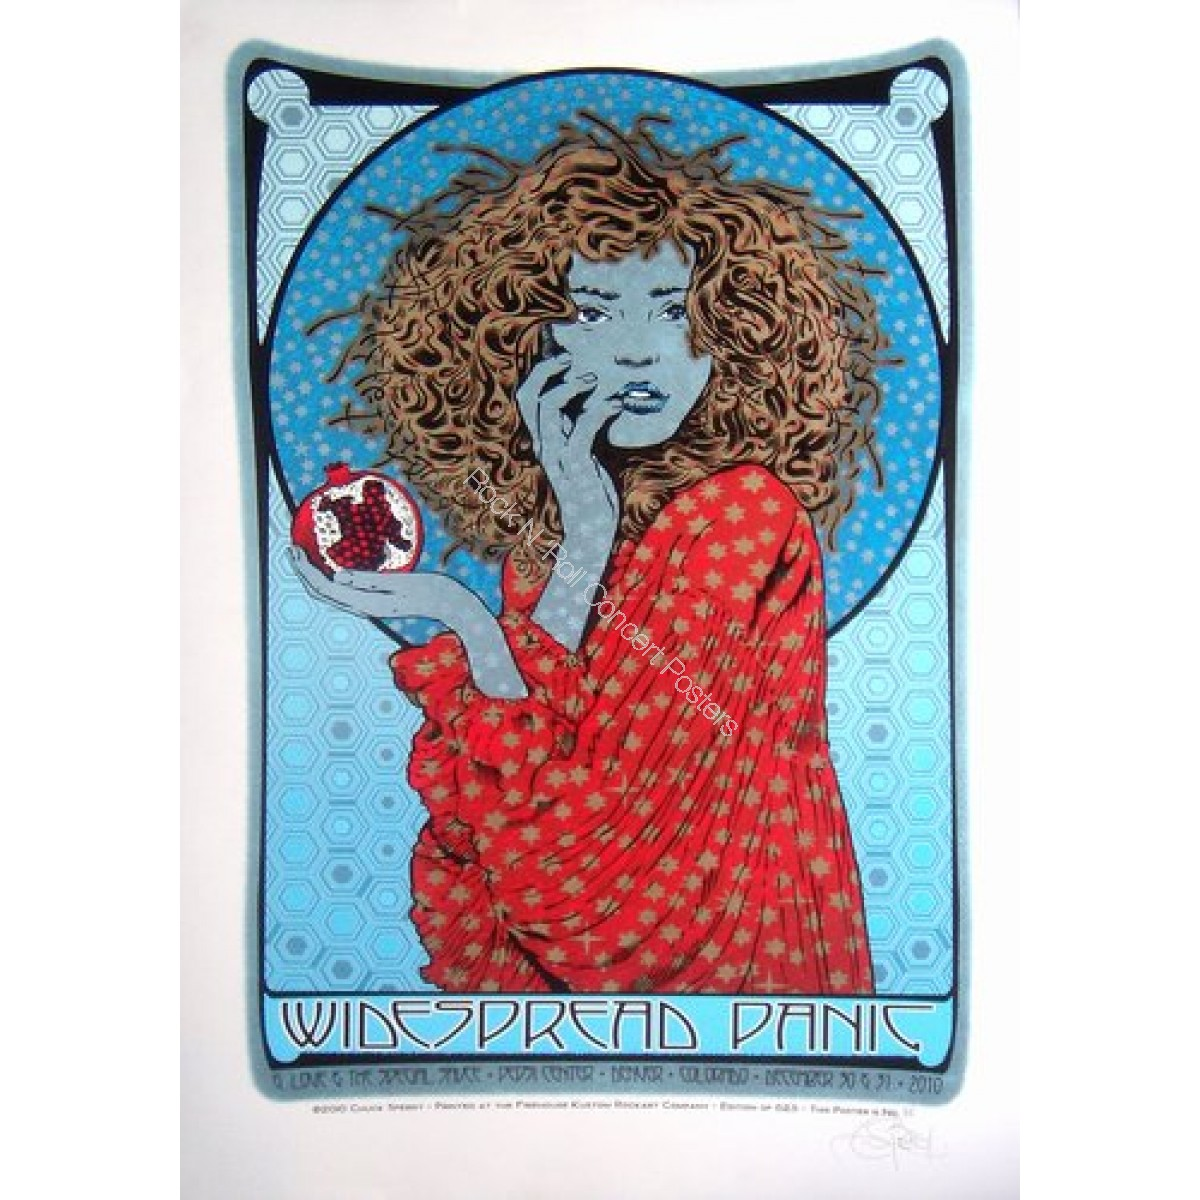 "Widespread Panic New Years Eve at The Pepsi Center Denver Colorado 2010 ""The Winter Lady"" Poster By Chuck Sperry"